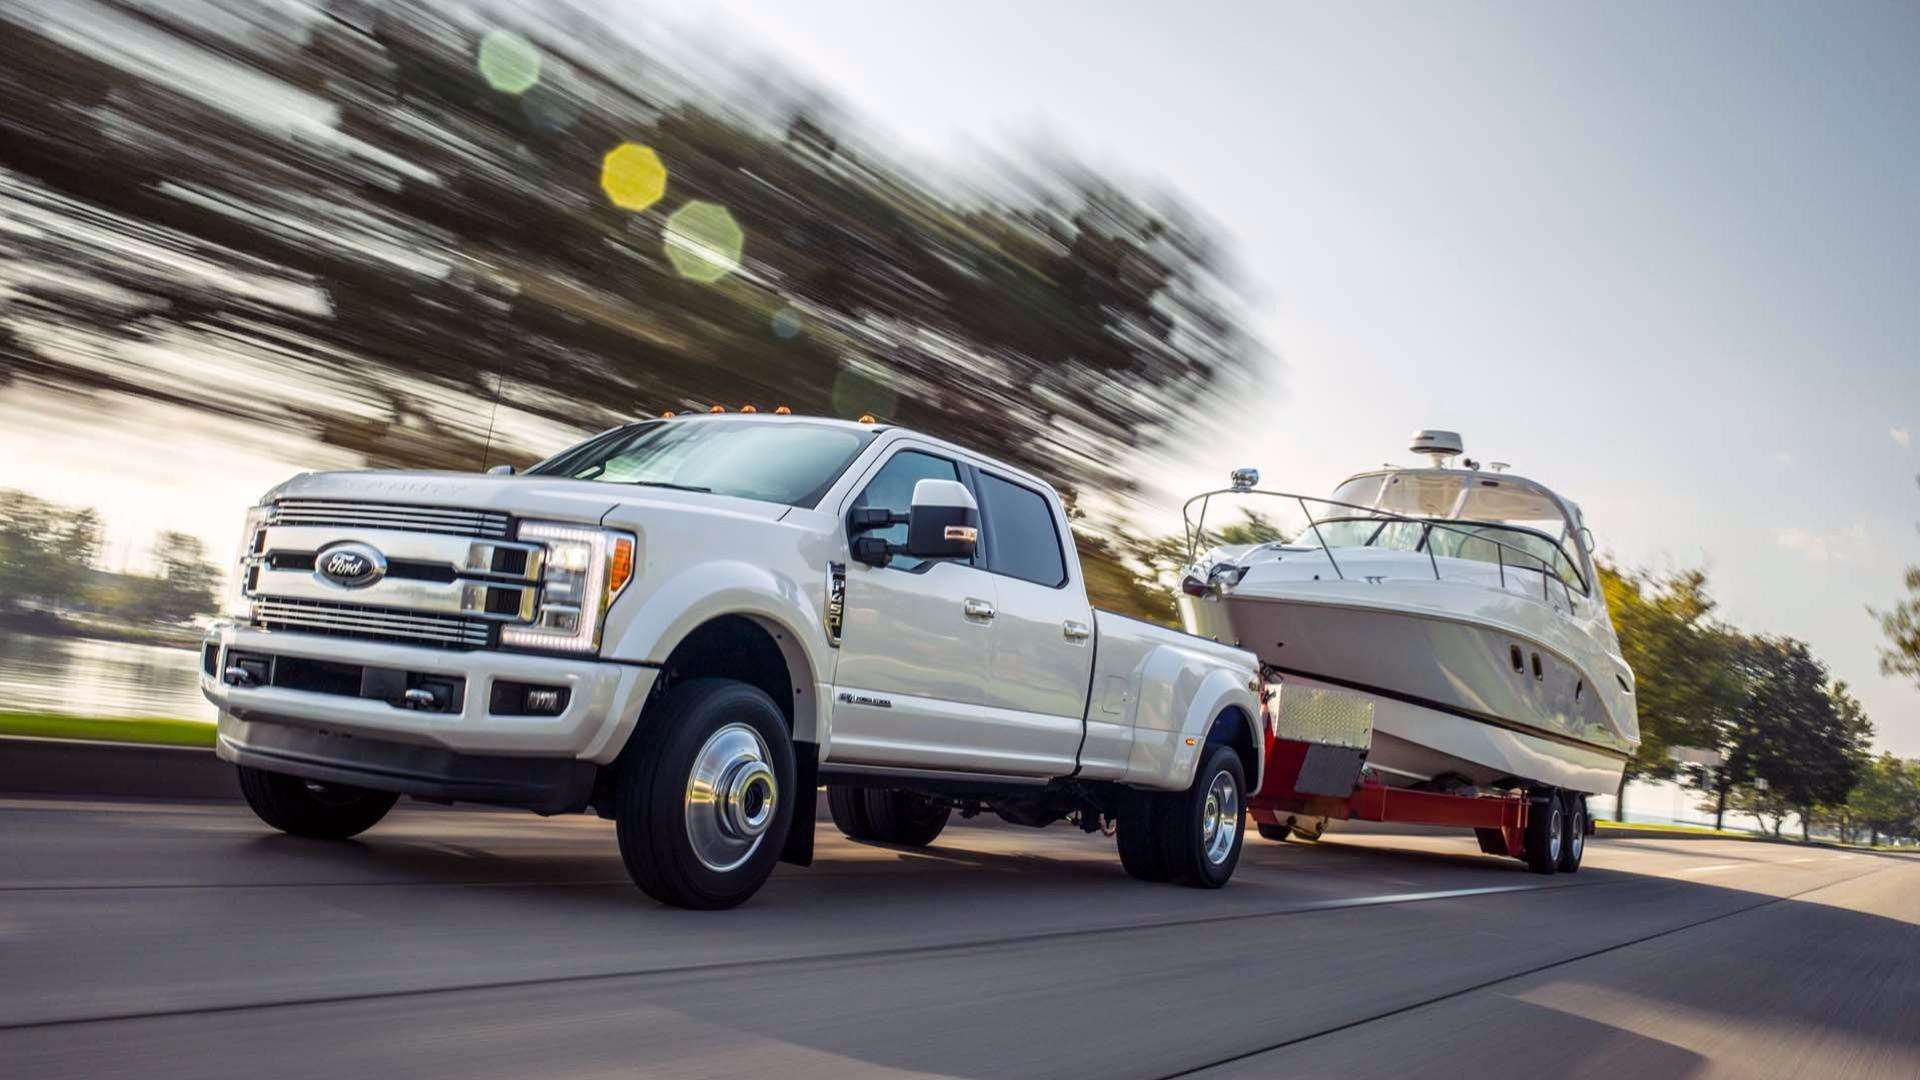 2018 Ford Super Duty >> 2018 Ford Super Duty Gets Engine Upgrade For Best In Class Power